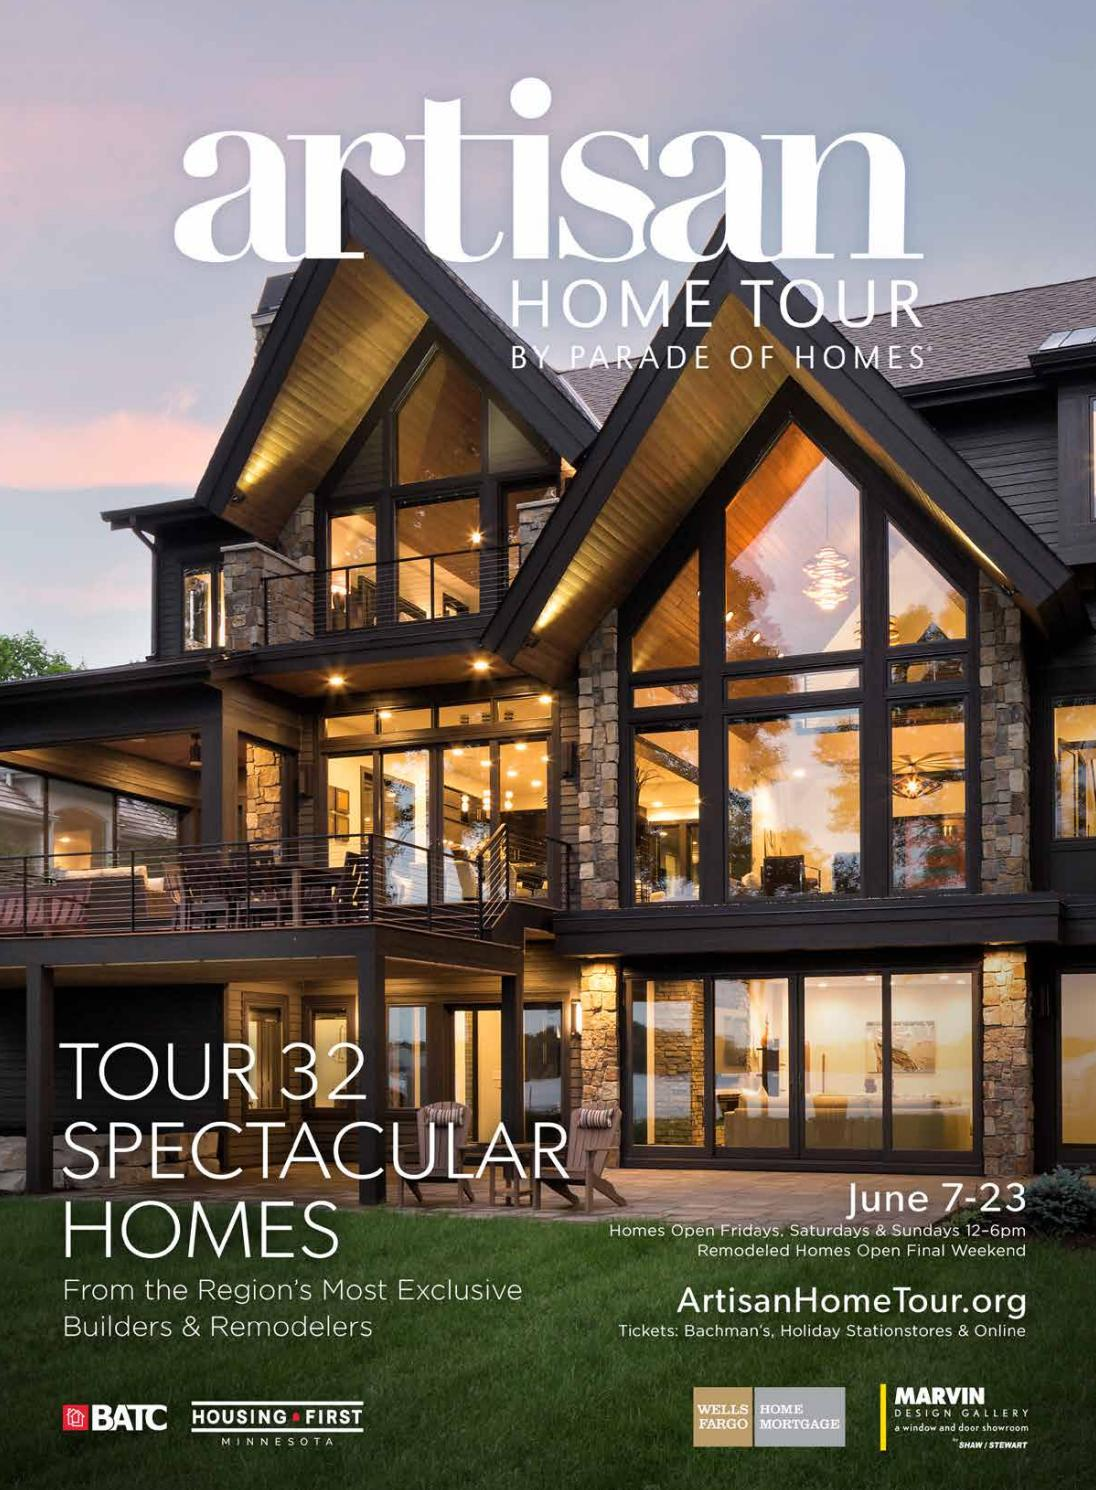 Modern Organic Home By John Kraemer Sons In Minneapolis Usa: Artisan Home Tour By Parade Of Homes 2019 Guidebook By BATC-Housing First Minnesota